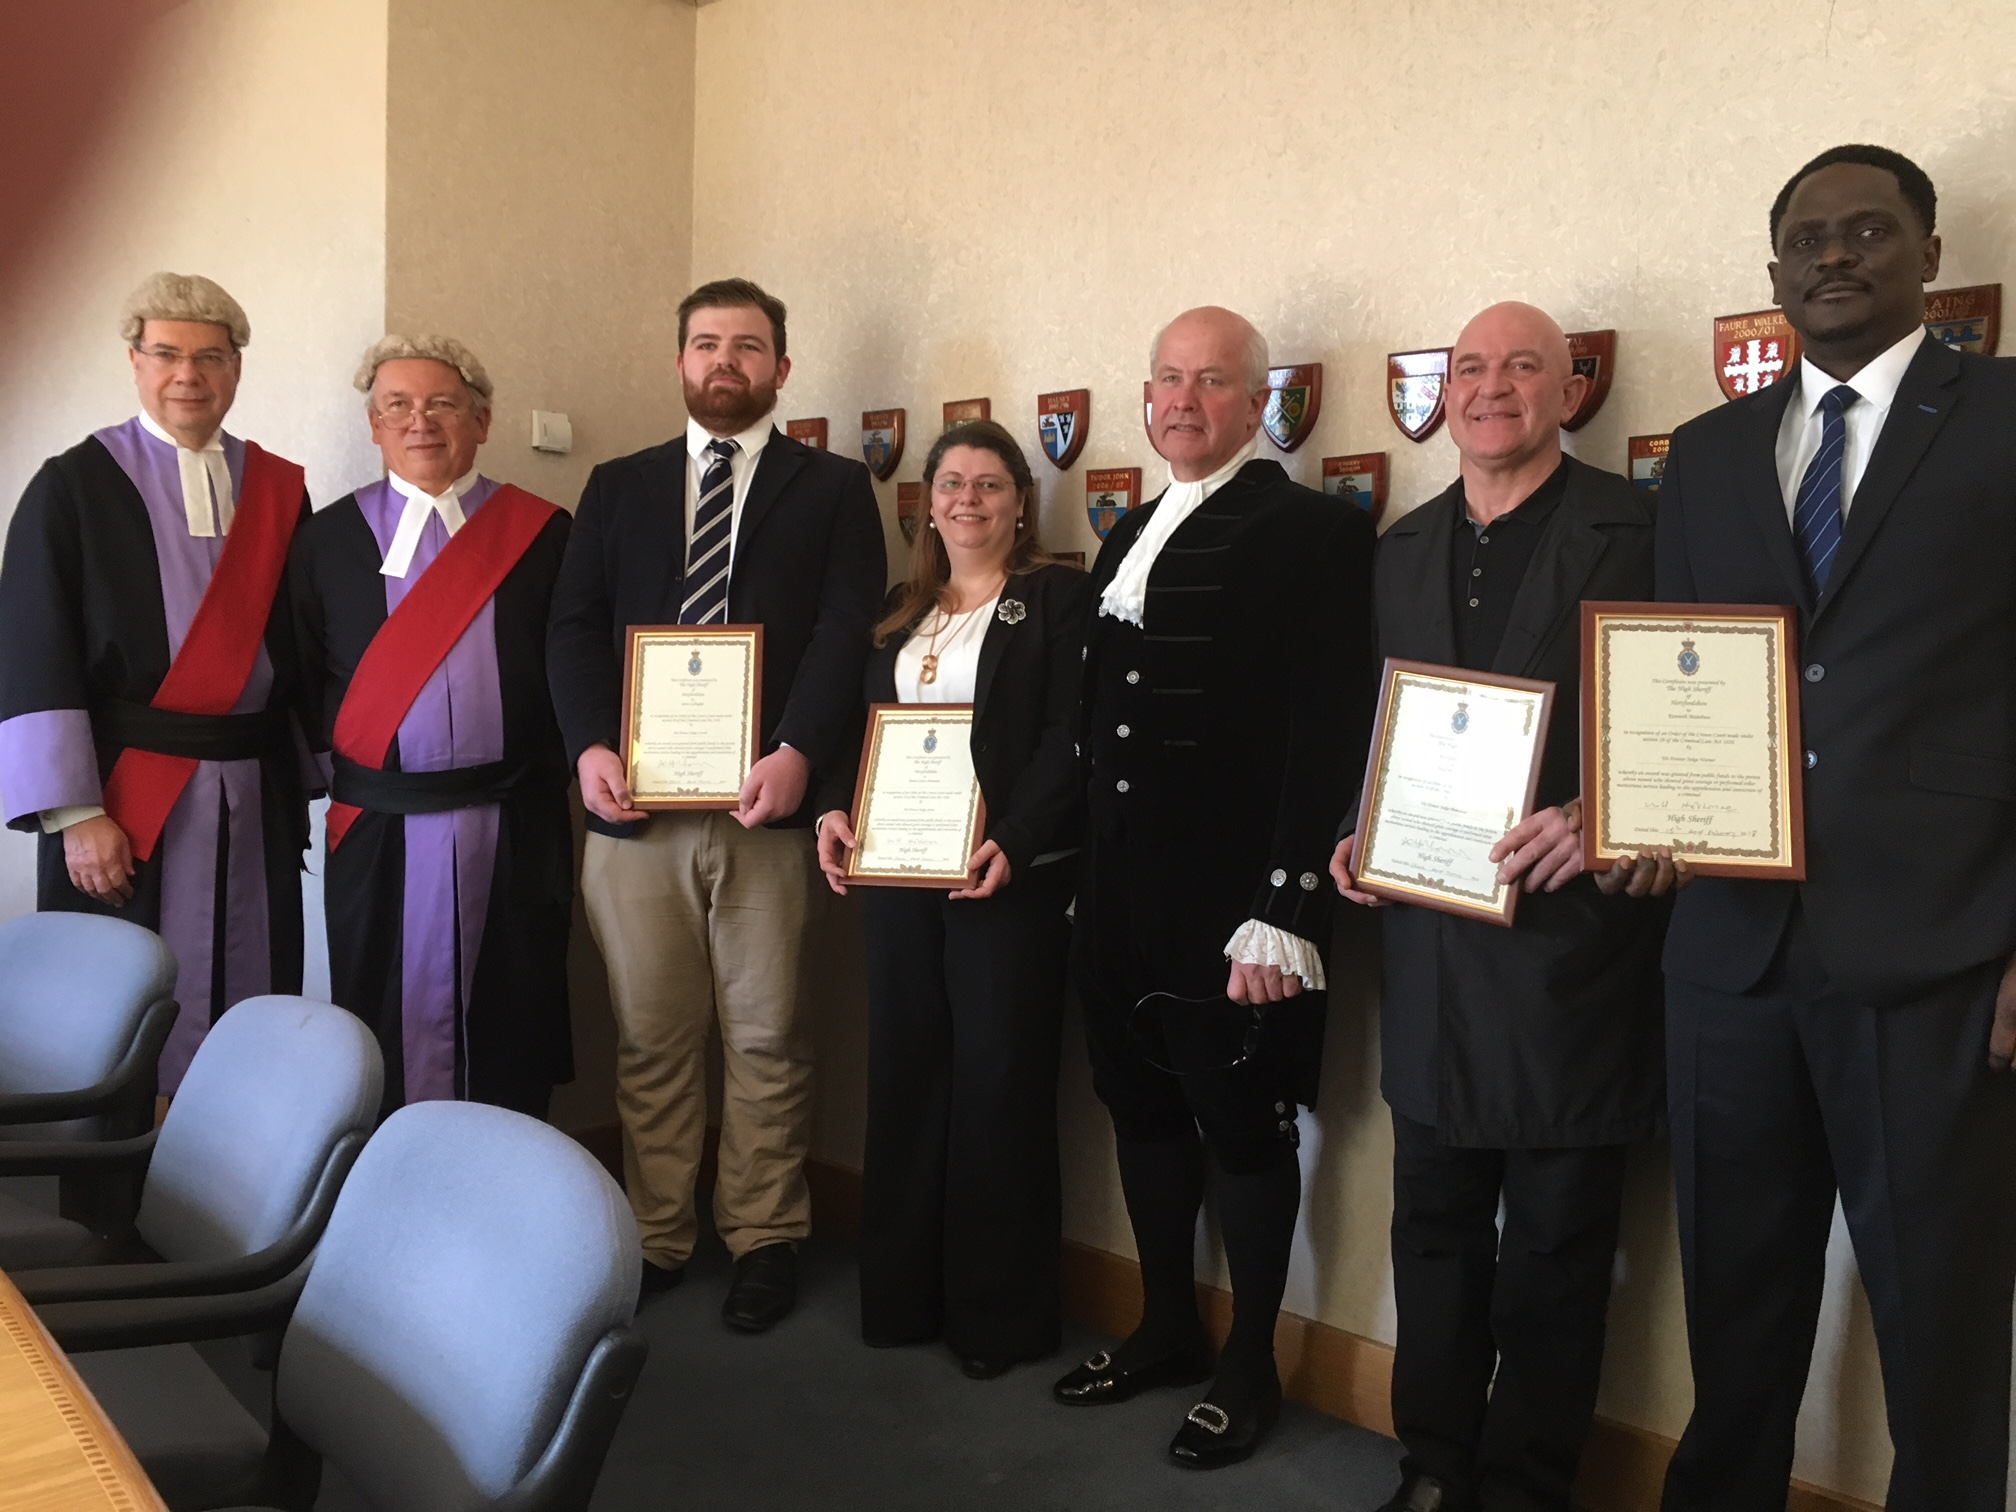 Court Awards February 2018